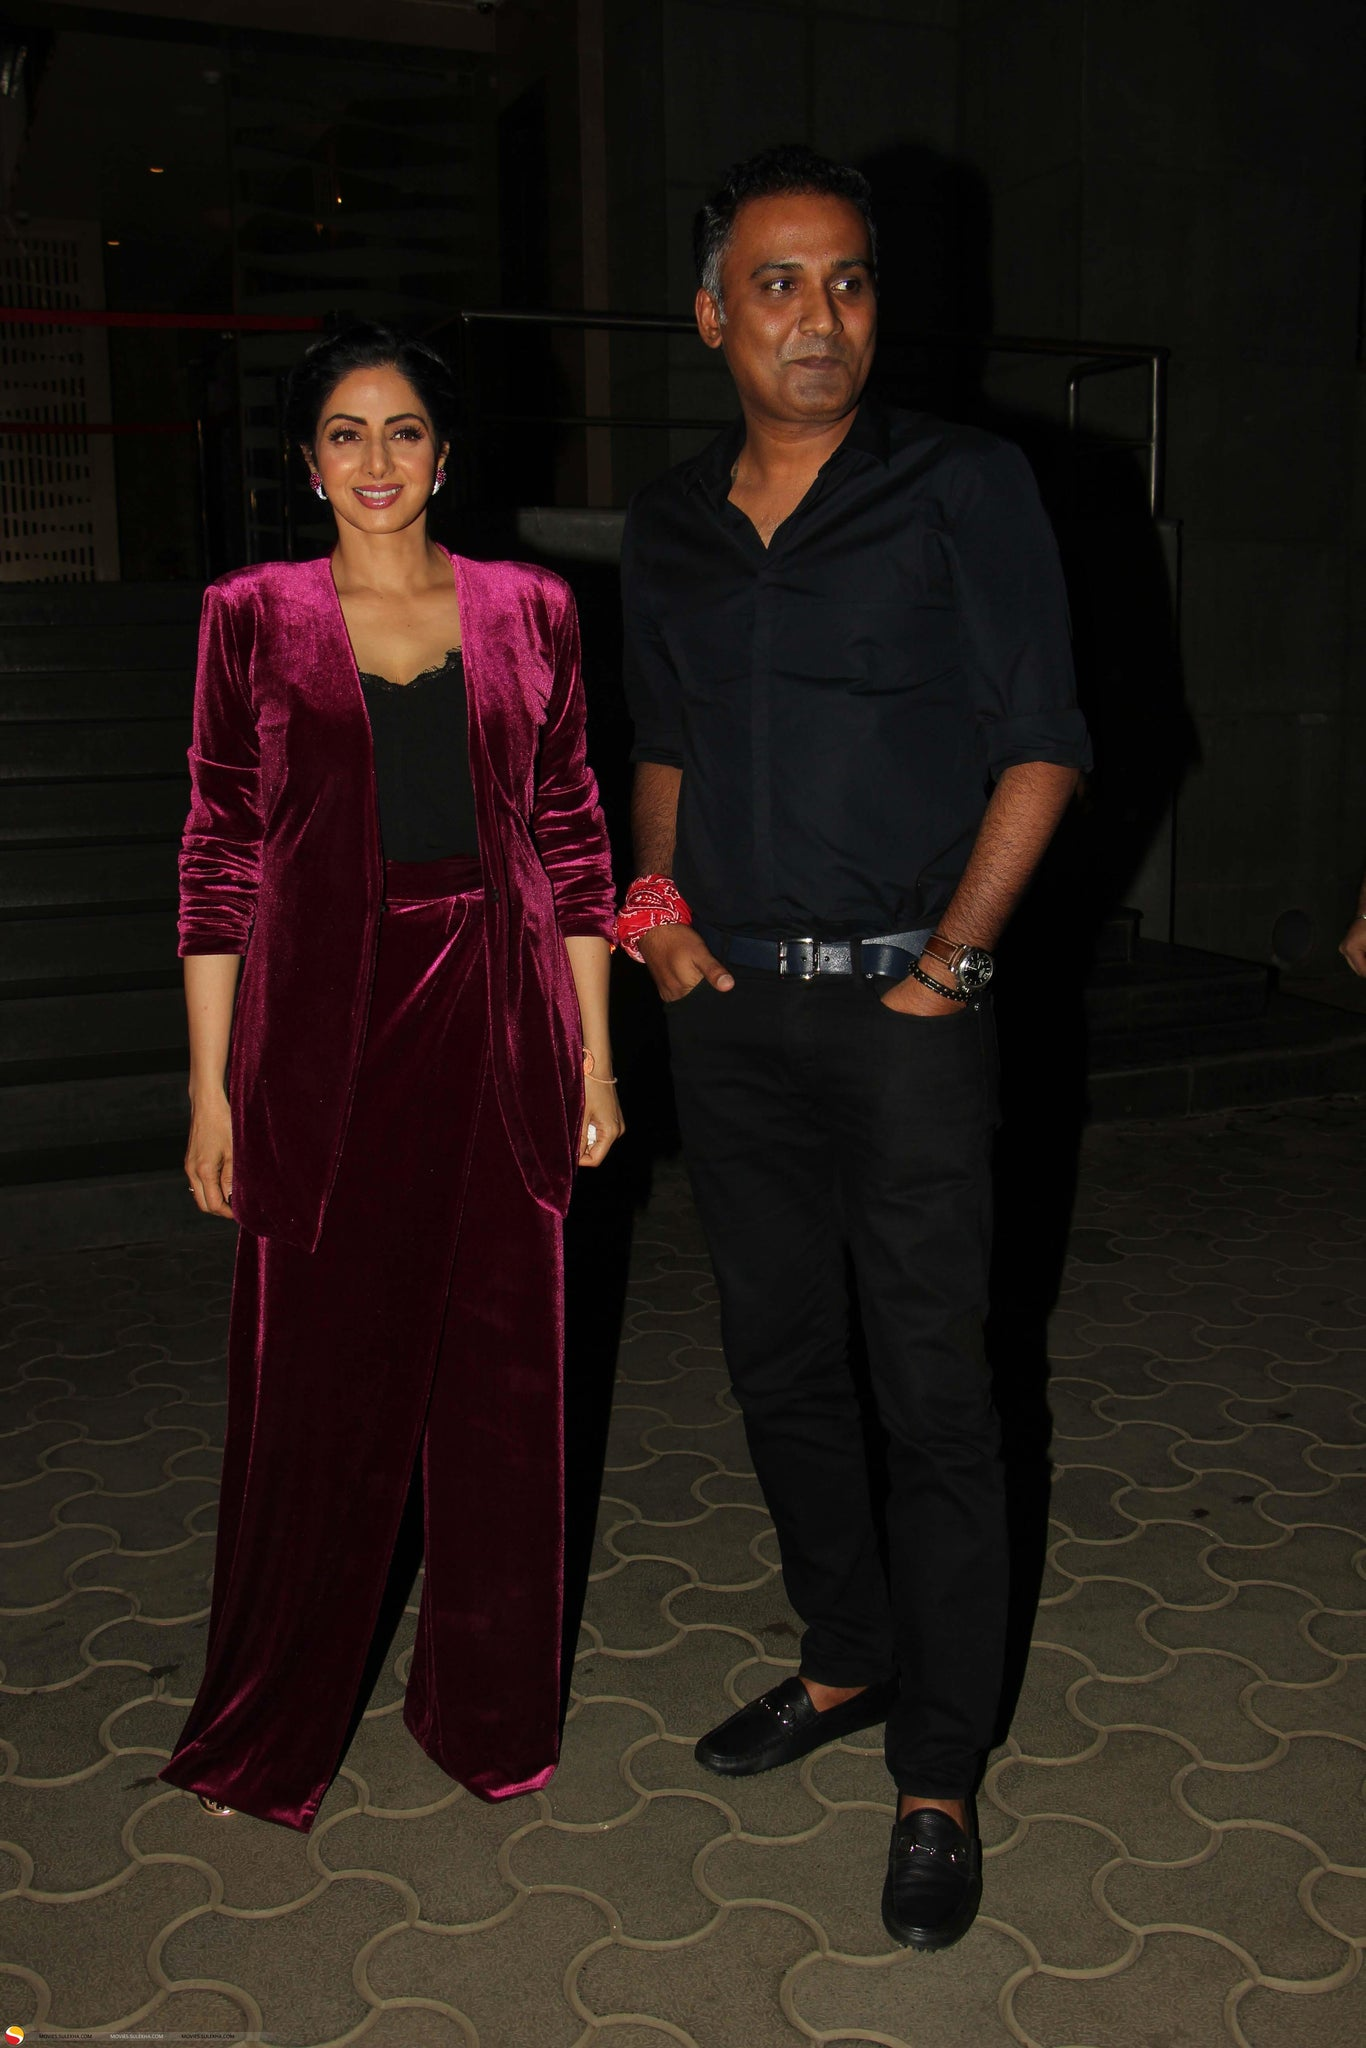 Sridevi In Velvet Outfit From Cactus At  'Mom' Press Meet